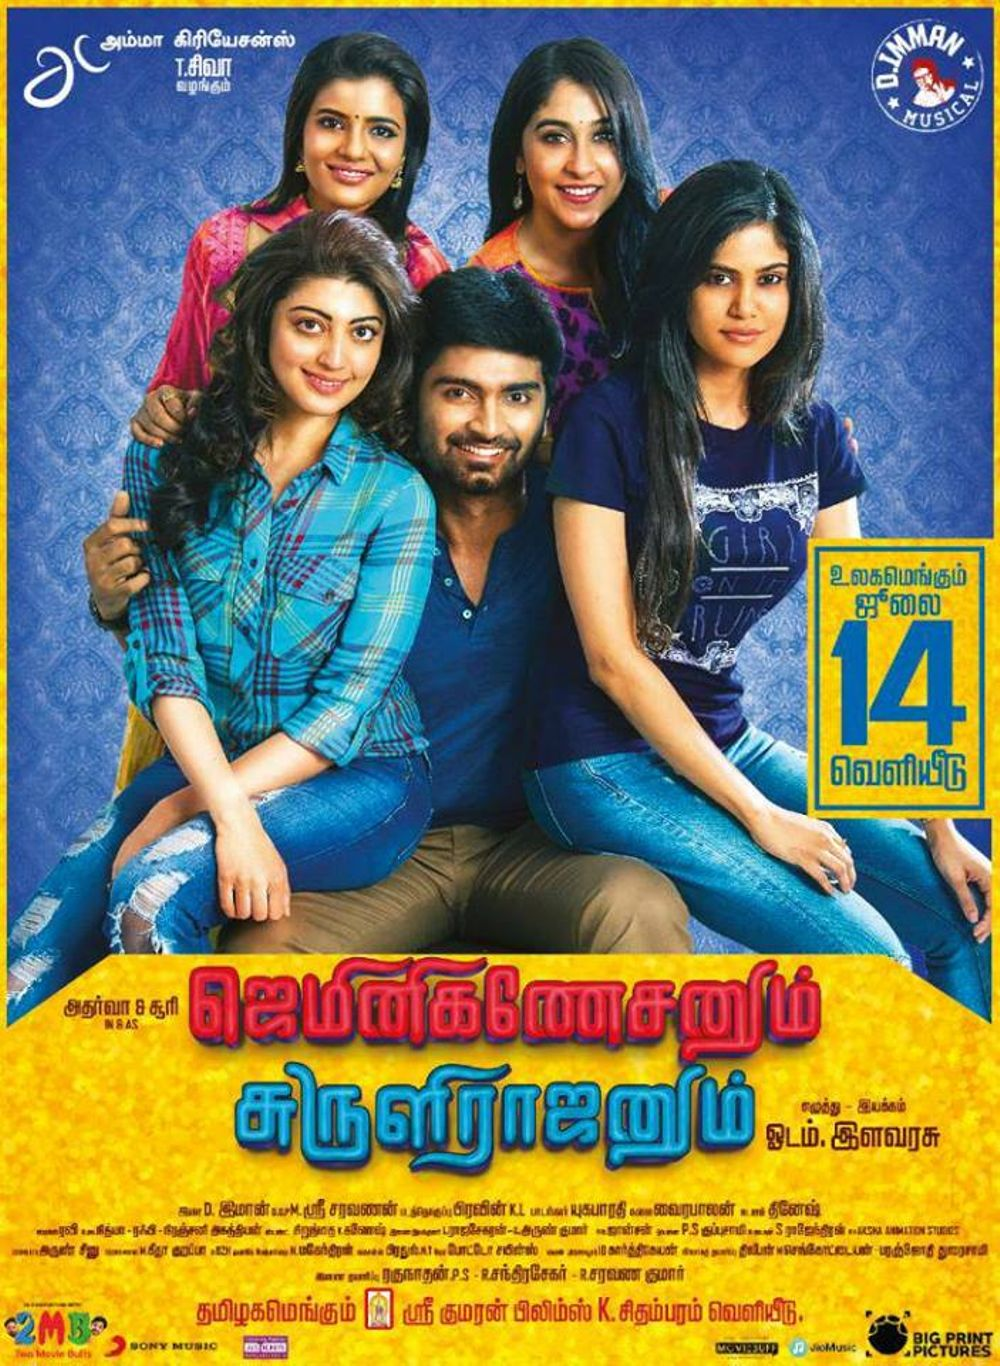 Gemini Ganeshanum Suruli Raajanum Movie Review Tamil Movie Review